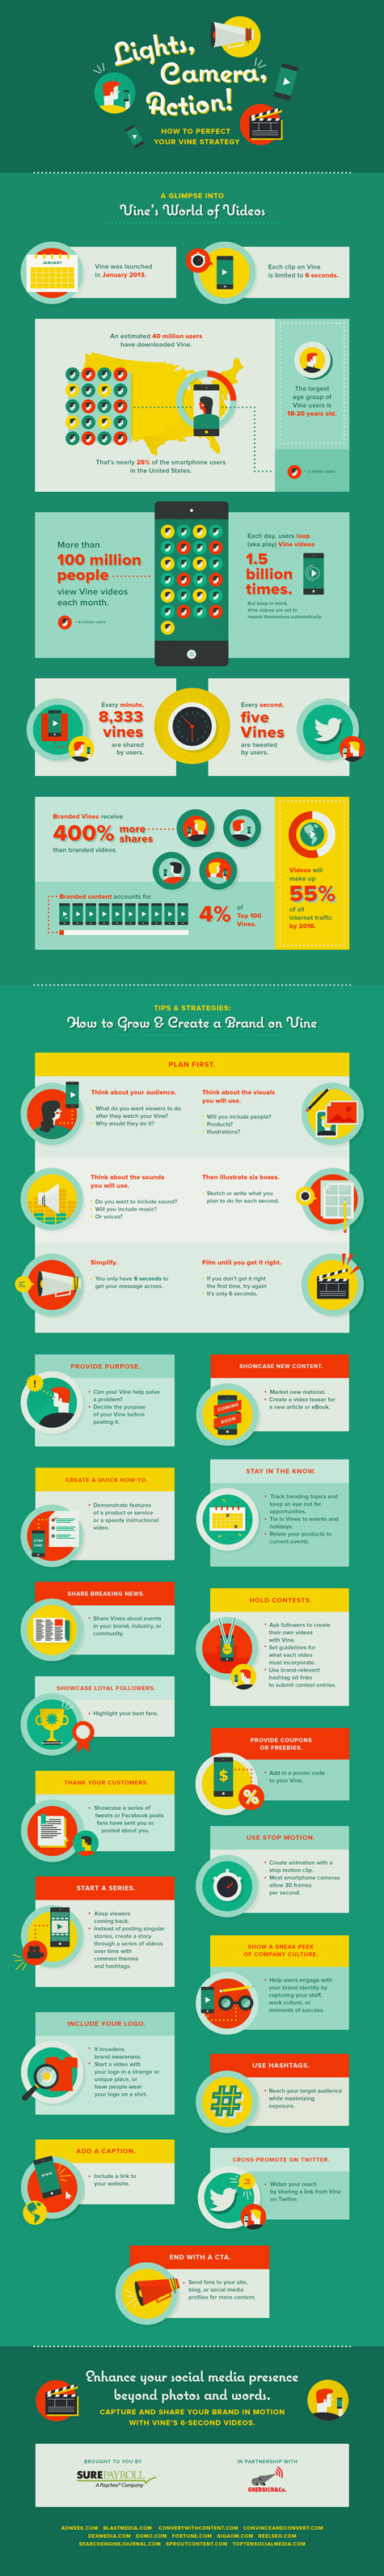 lights camera action how to perfect your vine strategy infographic 475